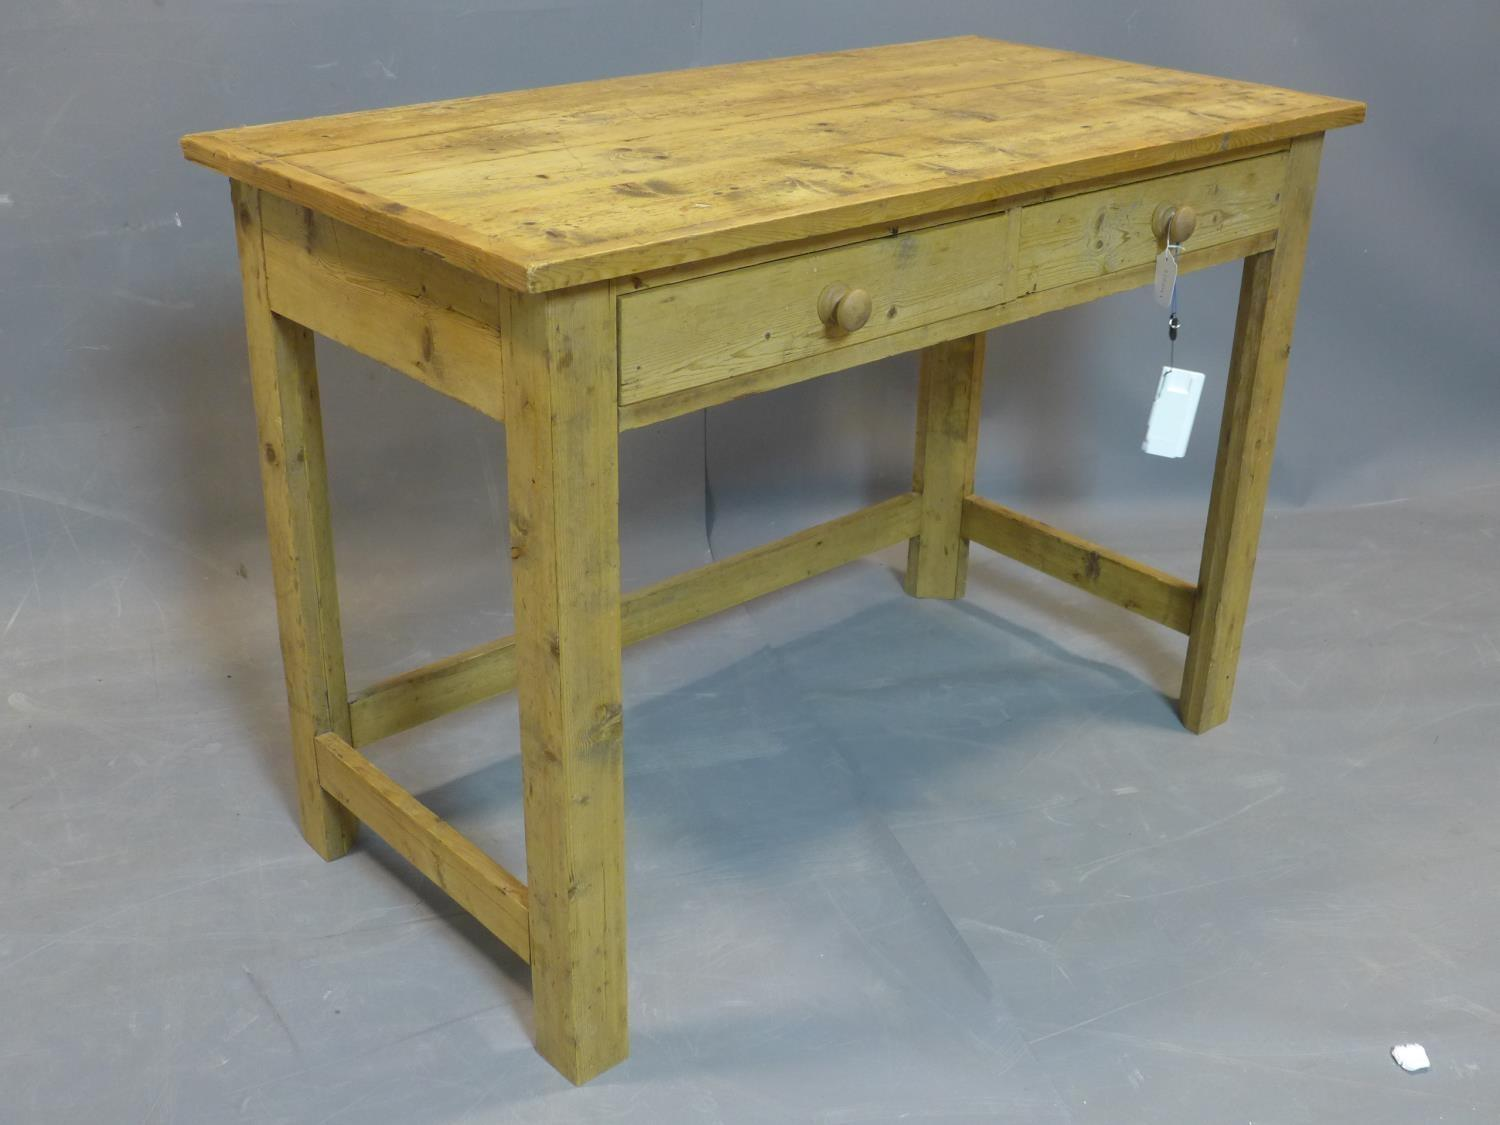 Lot 74 - A 20th century pine table, with two drawers, raised on square legs joined by stretcher, H.76 W.107